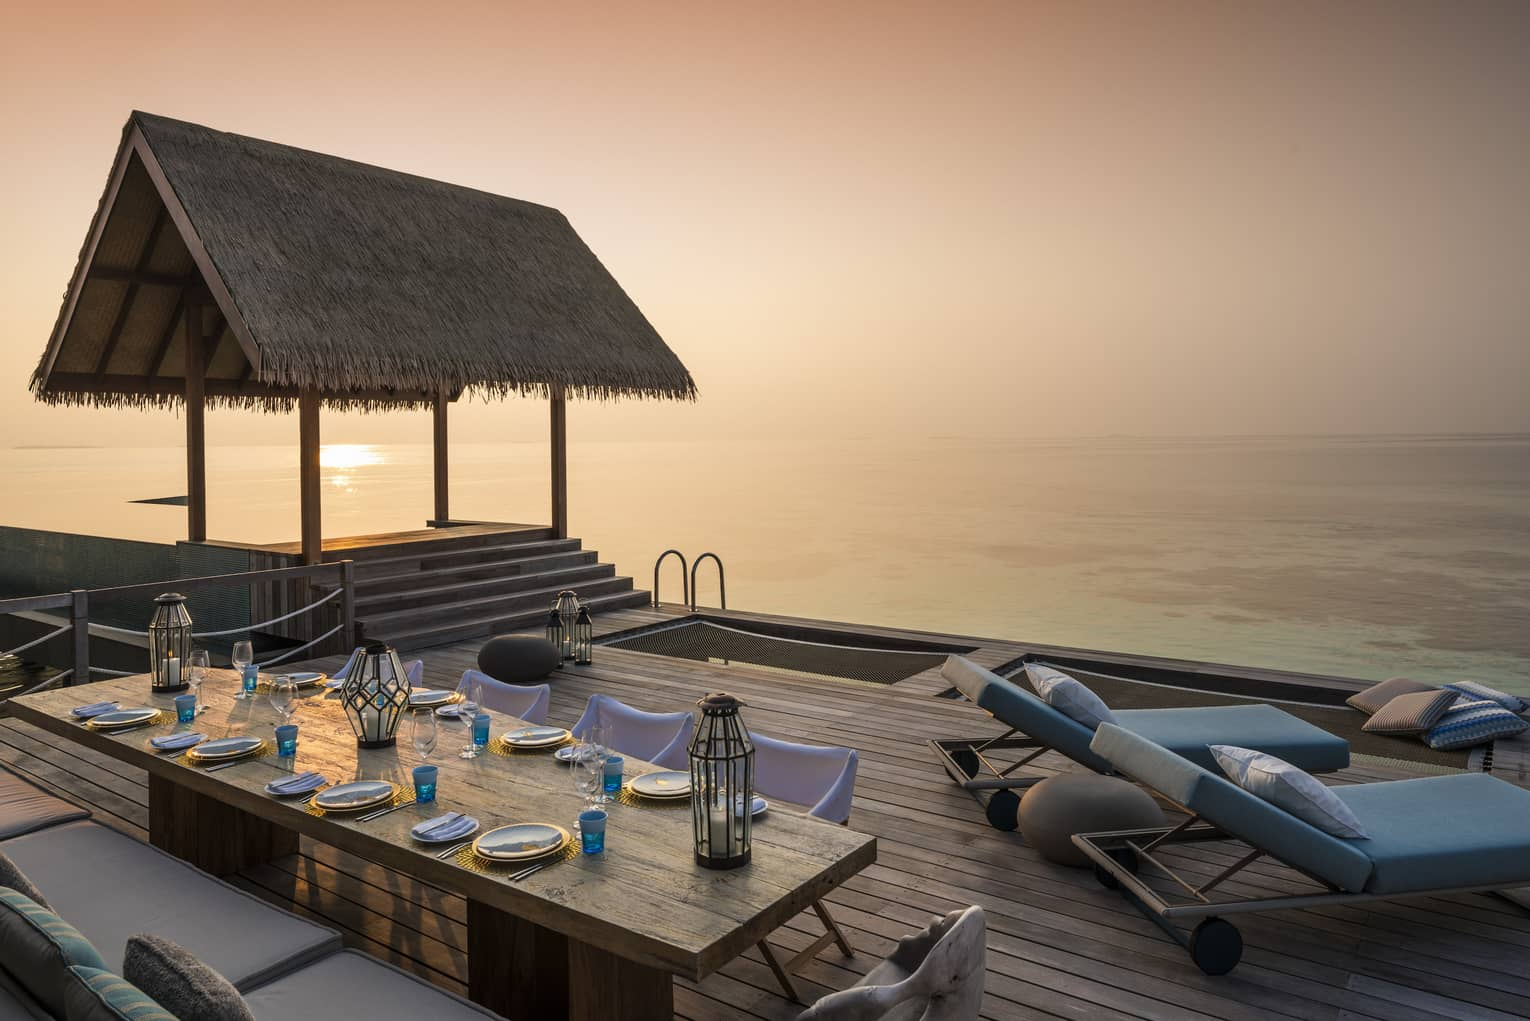 Two-Bedroom Water Villa thatched roof pavilion over long private dining table on deck at sunset